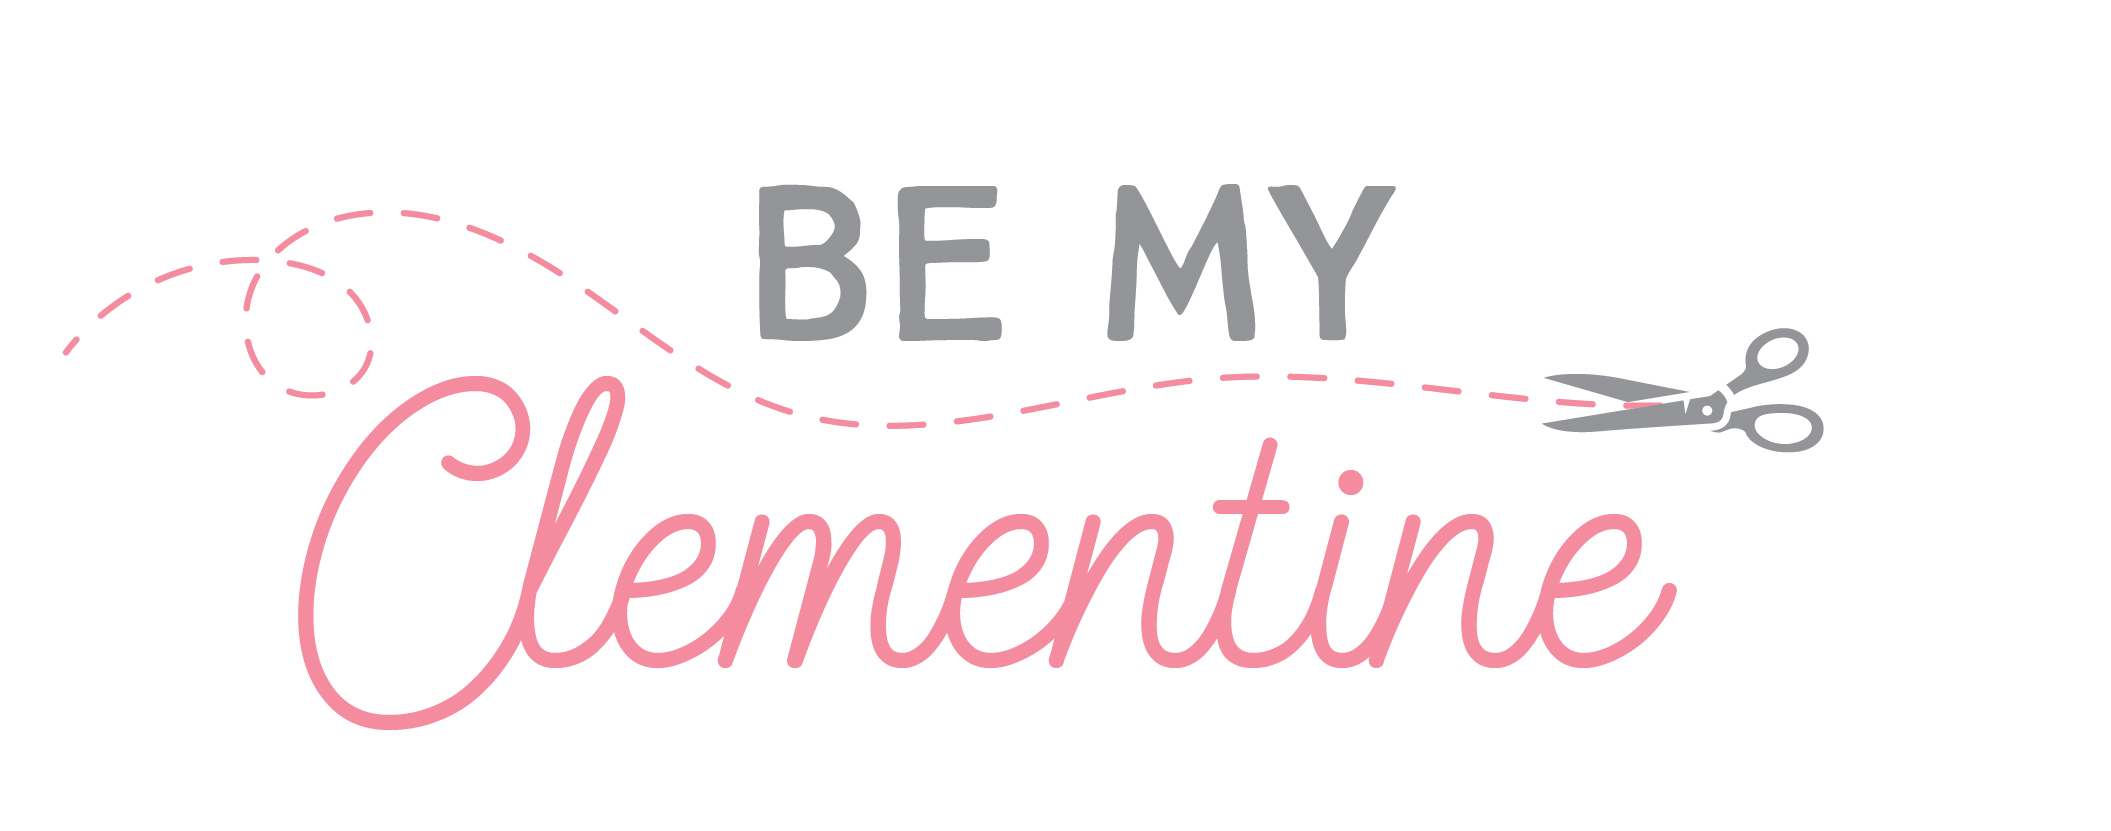 Be My Clementine logo design crafty blogger etsy seller shop